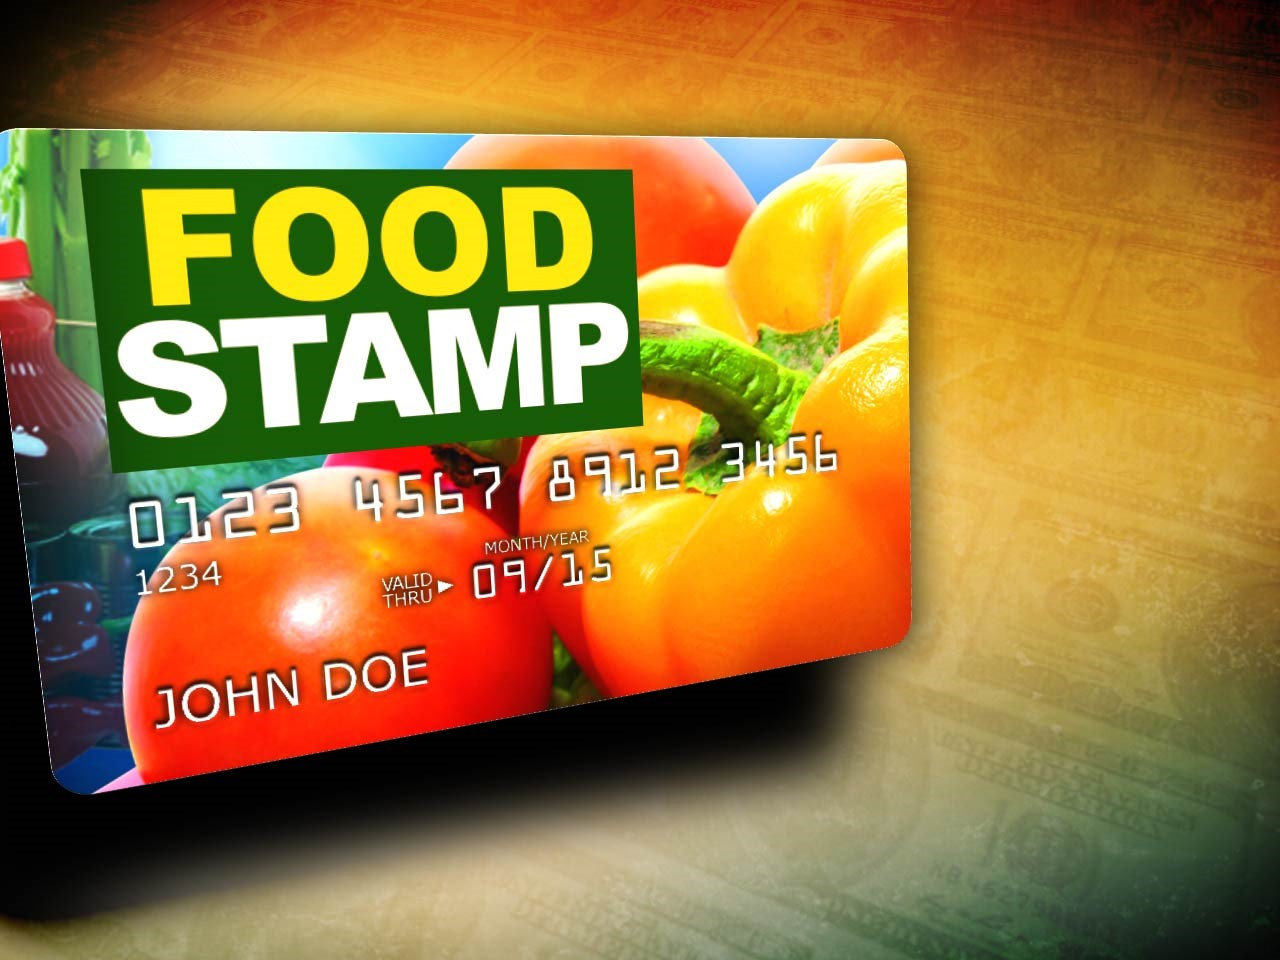 County Food Stamp Office